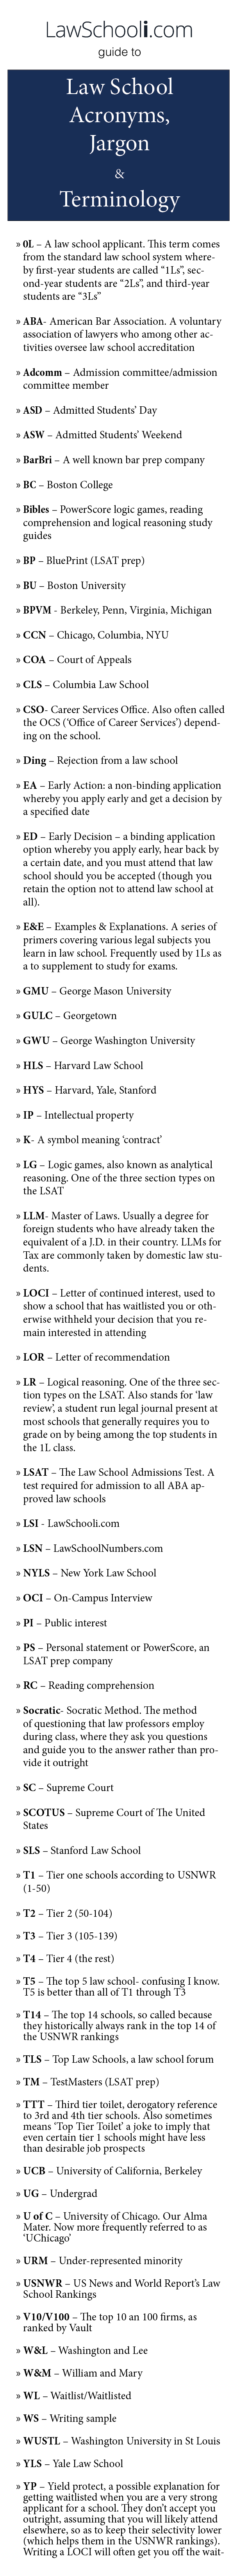 law school acronyms jargon and terminology study guides study lawschooli com guide to law school acronyms jargon terminology